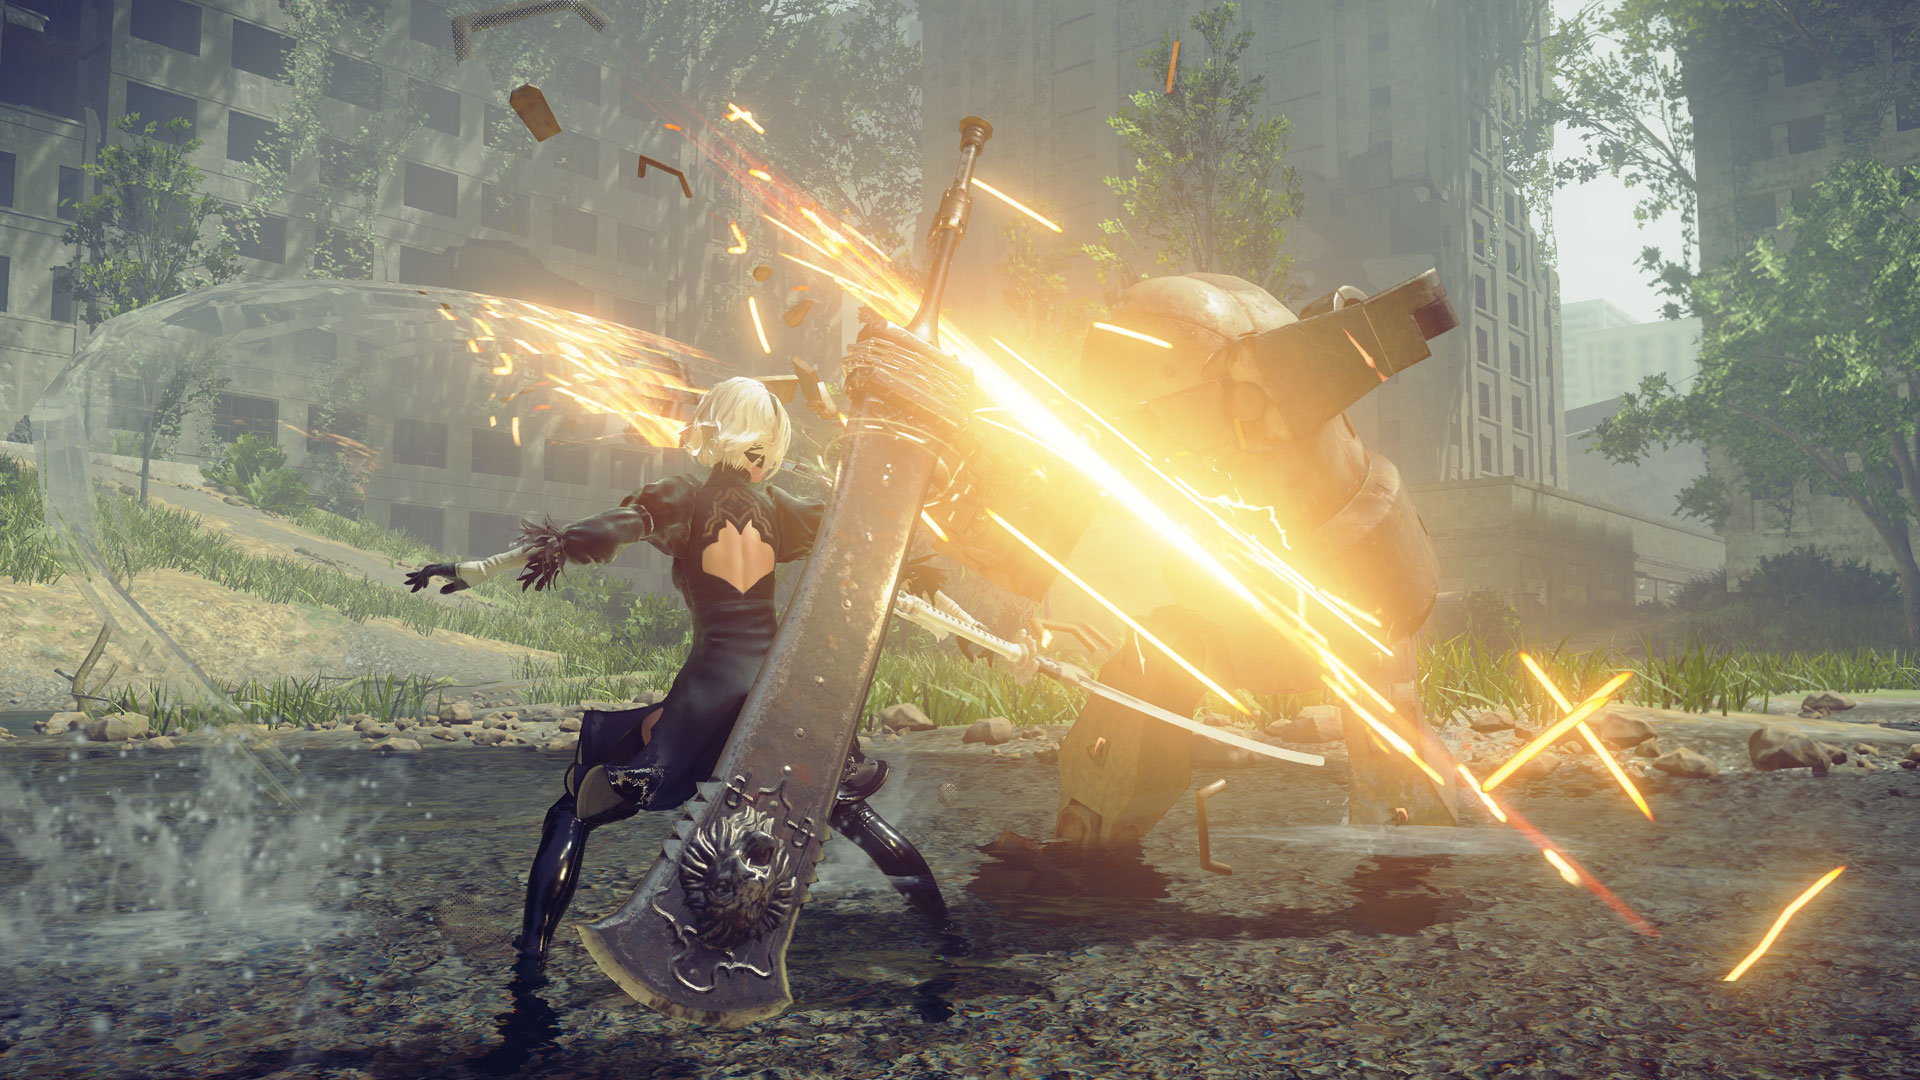 download nier automata day one edition cracked by baldman cpy conspir4cy crack 3dm emu codex free for pc multi 6 language all voice